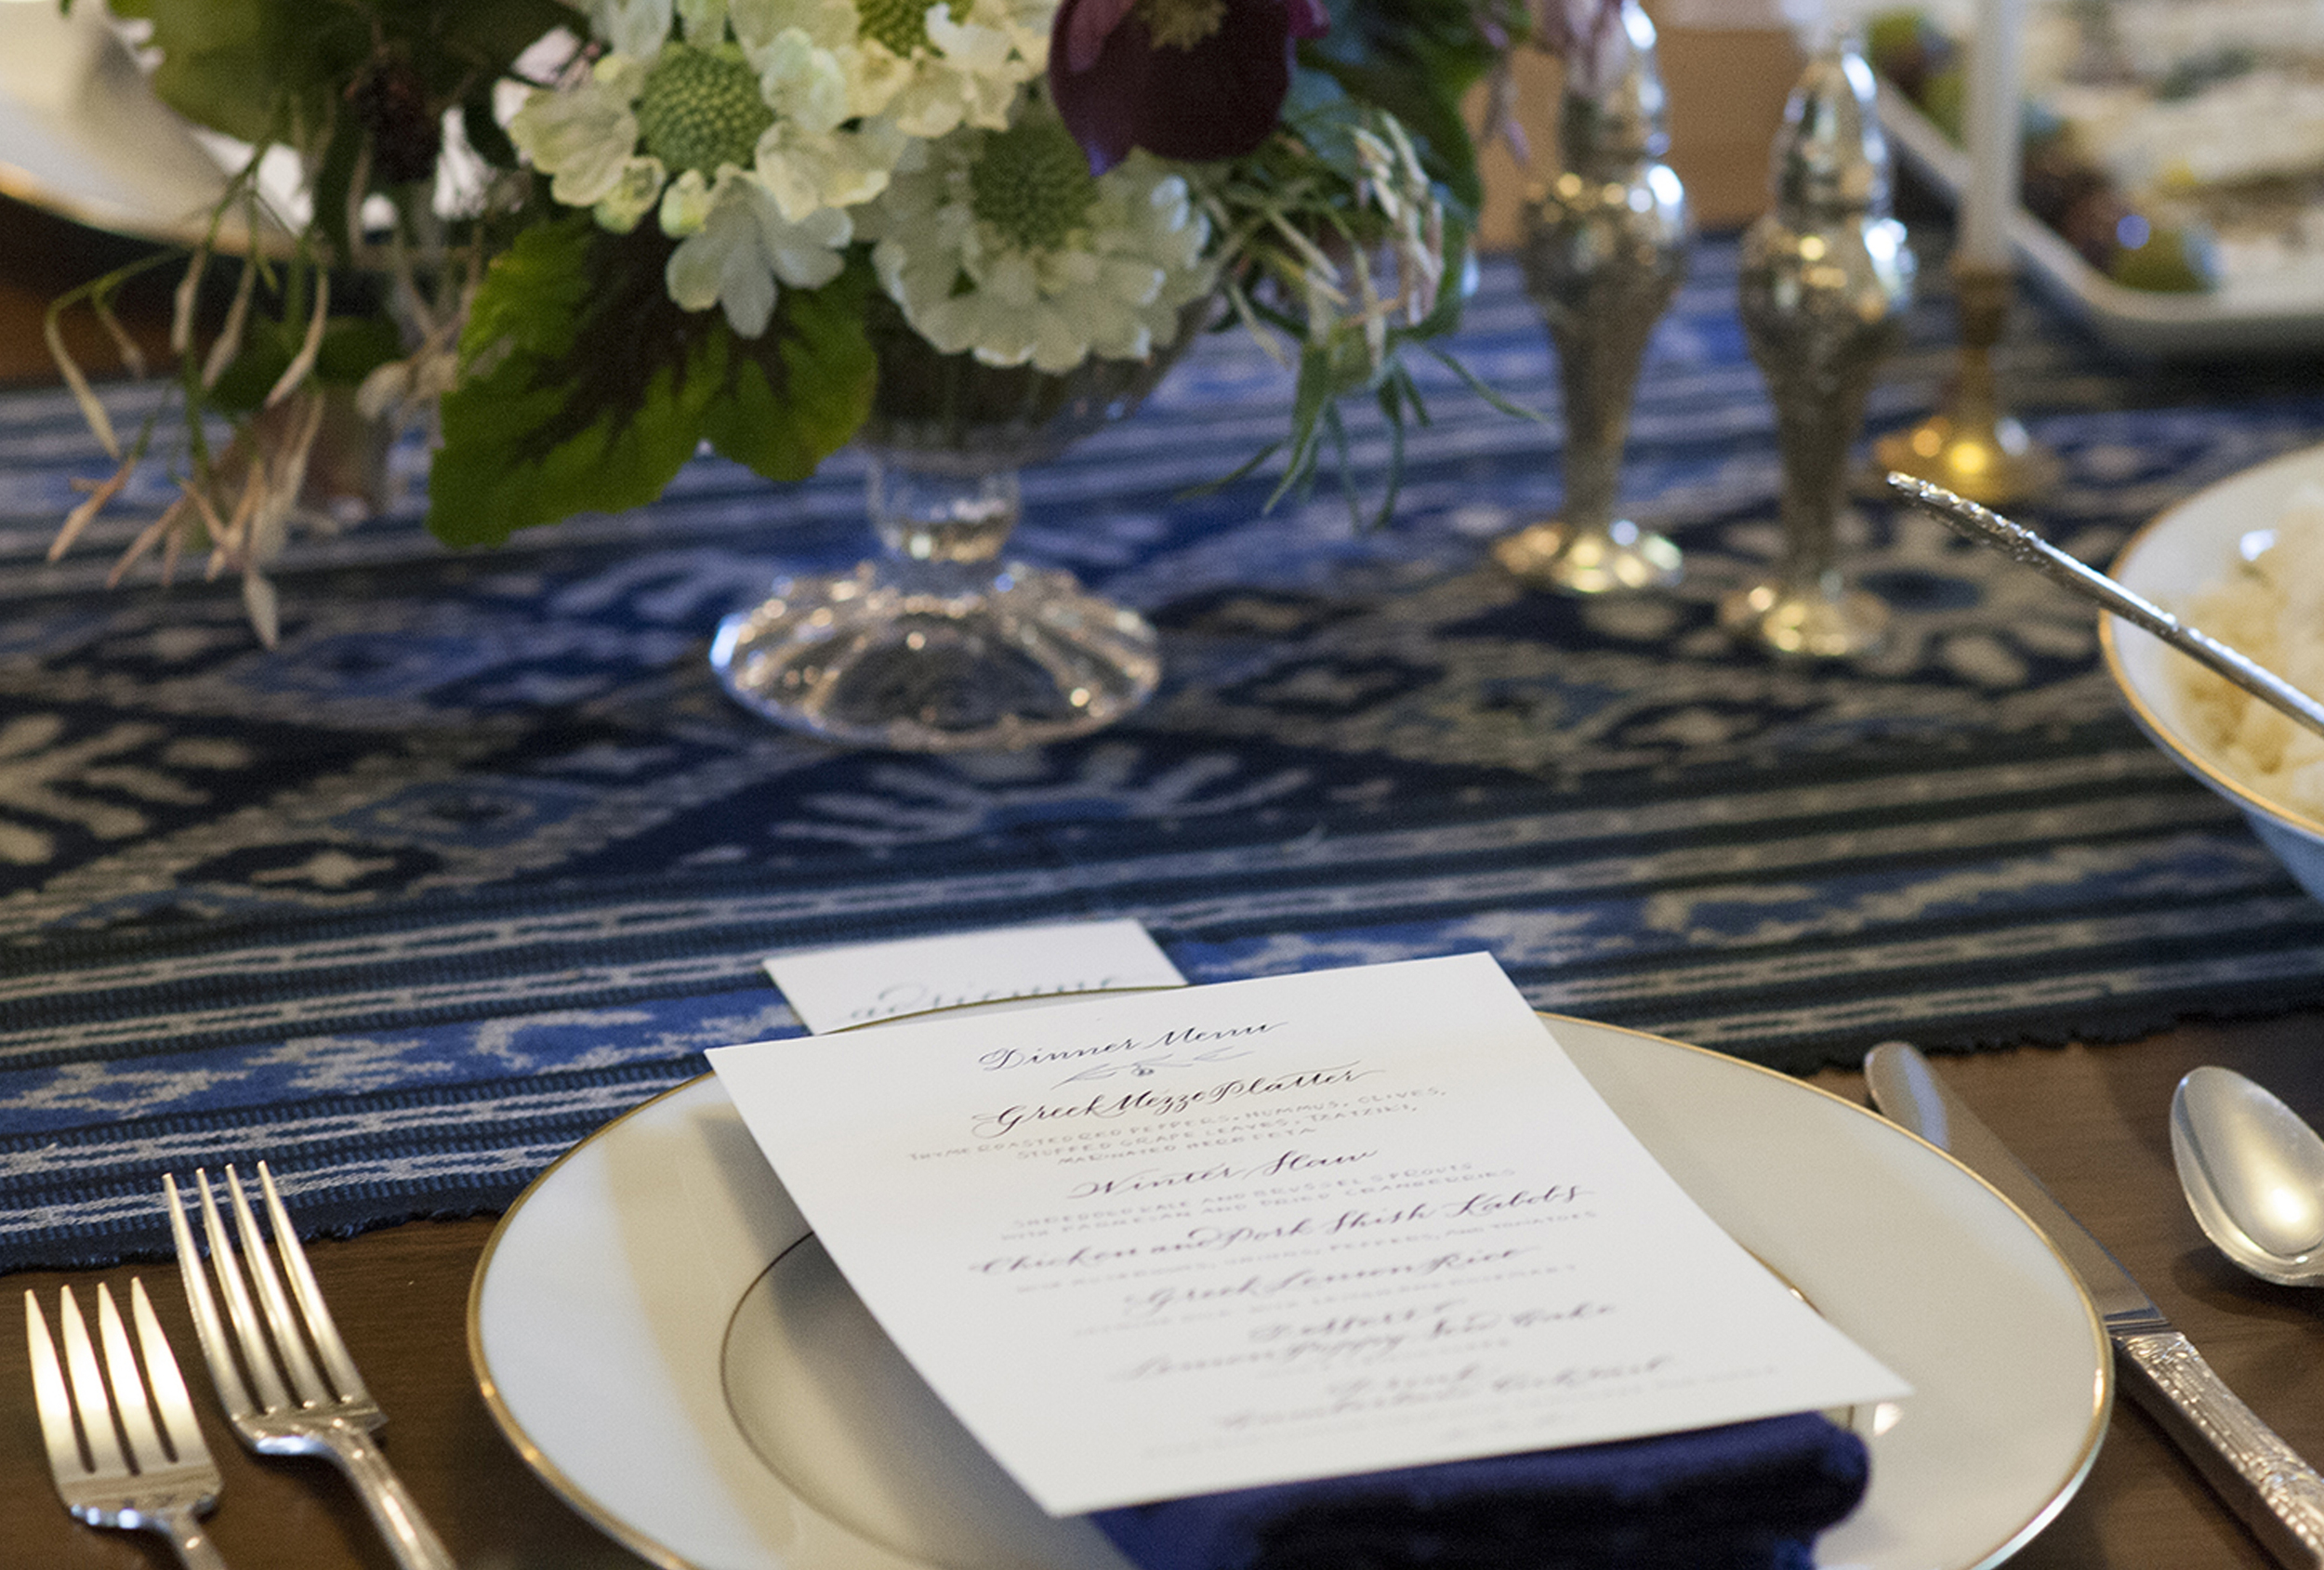 Place setting of the calligraphed menu at a client's dinner party. Floral arrangements done by  Wylde .